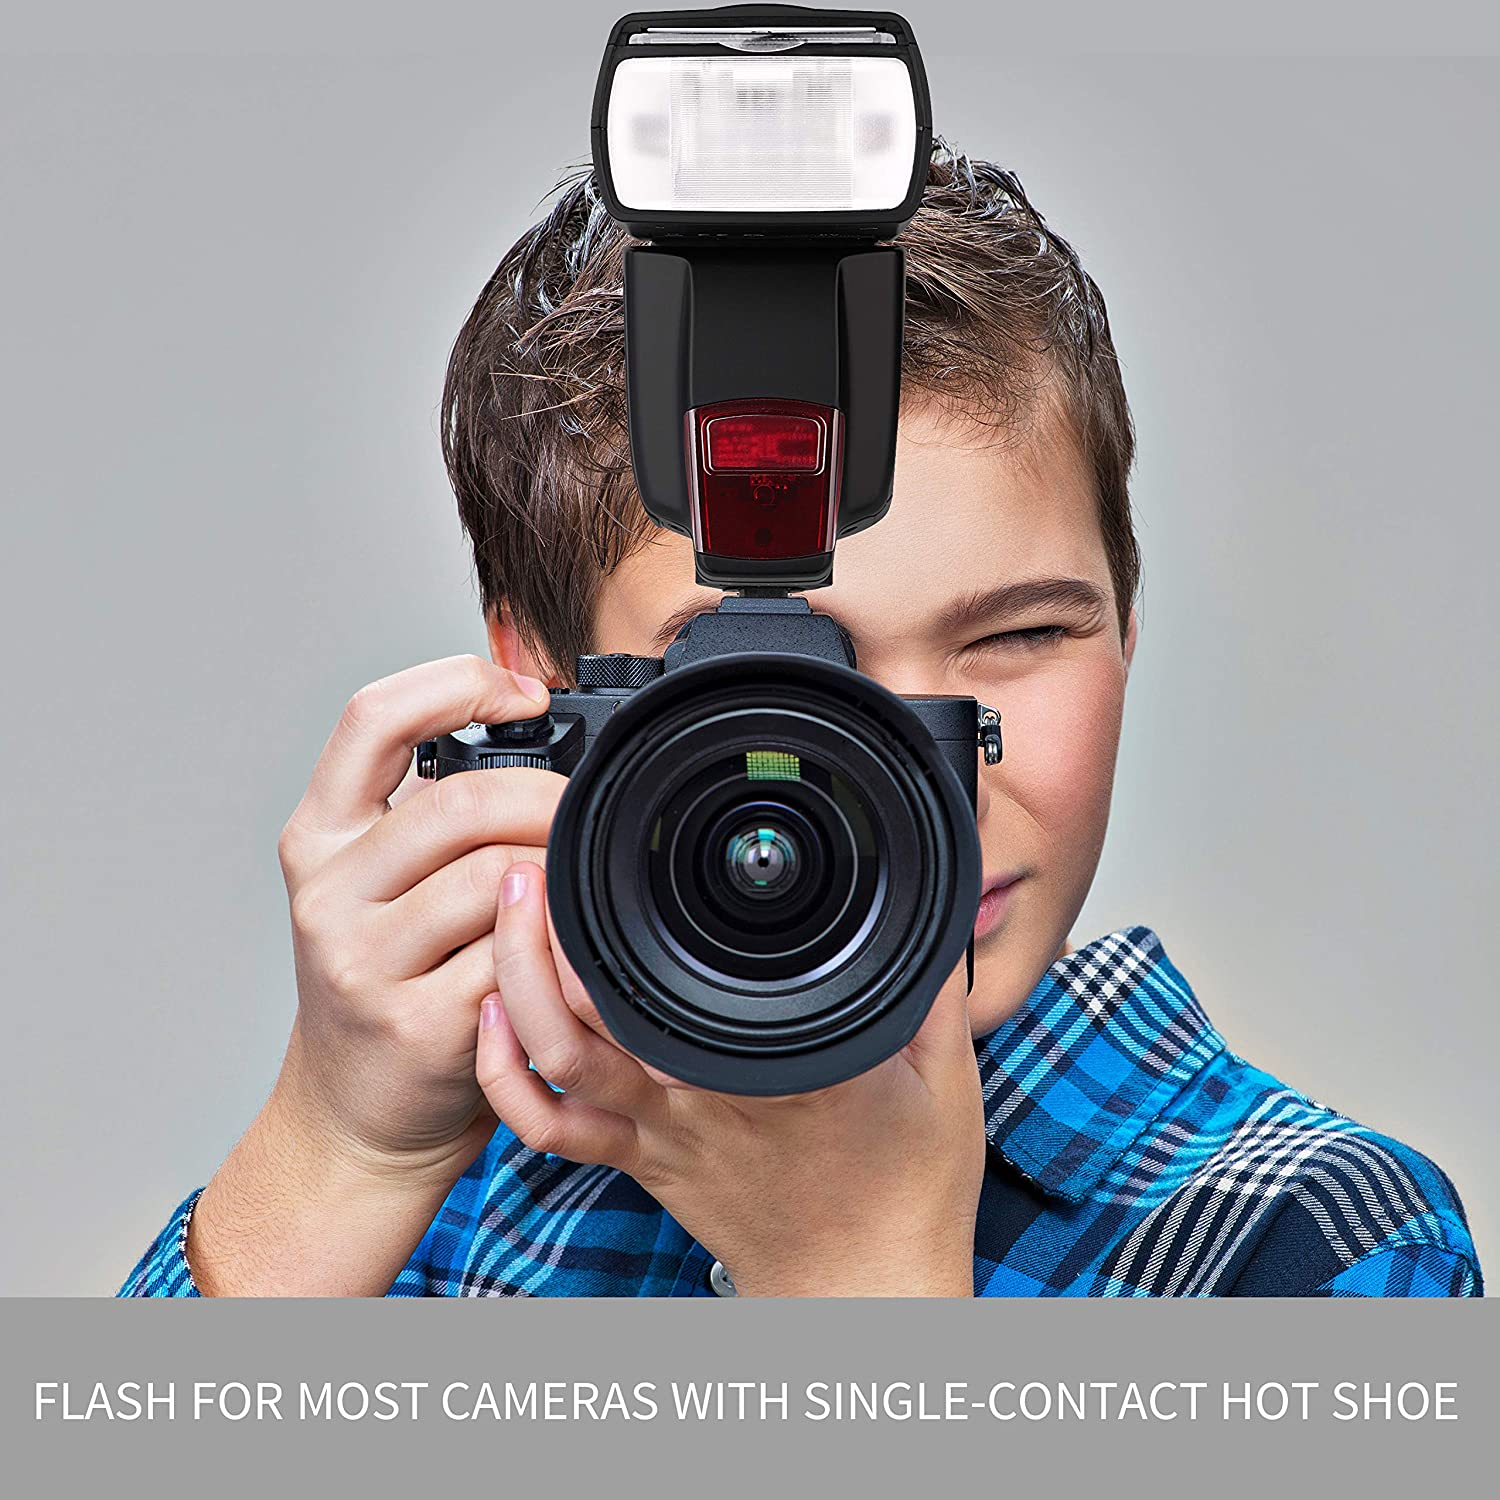 Flash Speedlite for Canon Nikon Panasonic Olympus Pentax and Other DSLR Cameras,Digital Cameras with Standard Hot Shoe Wireless Flash Speedlite 2.4G Wireless Radio Suitable All DSLR Cameras